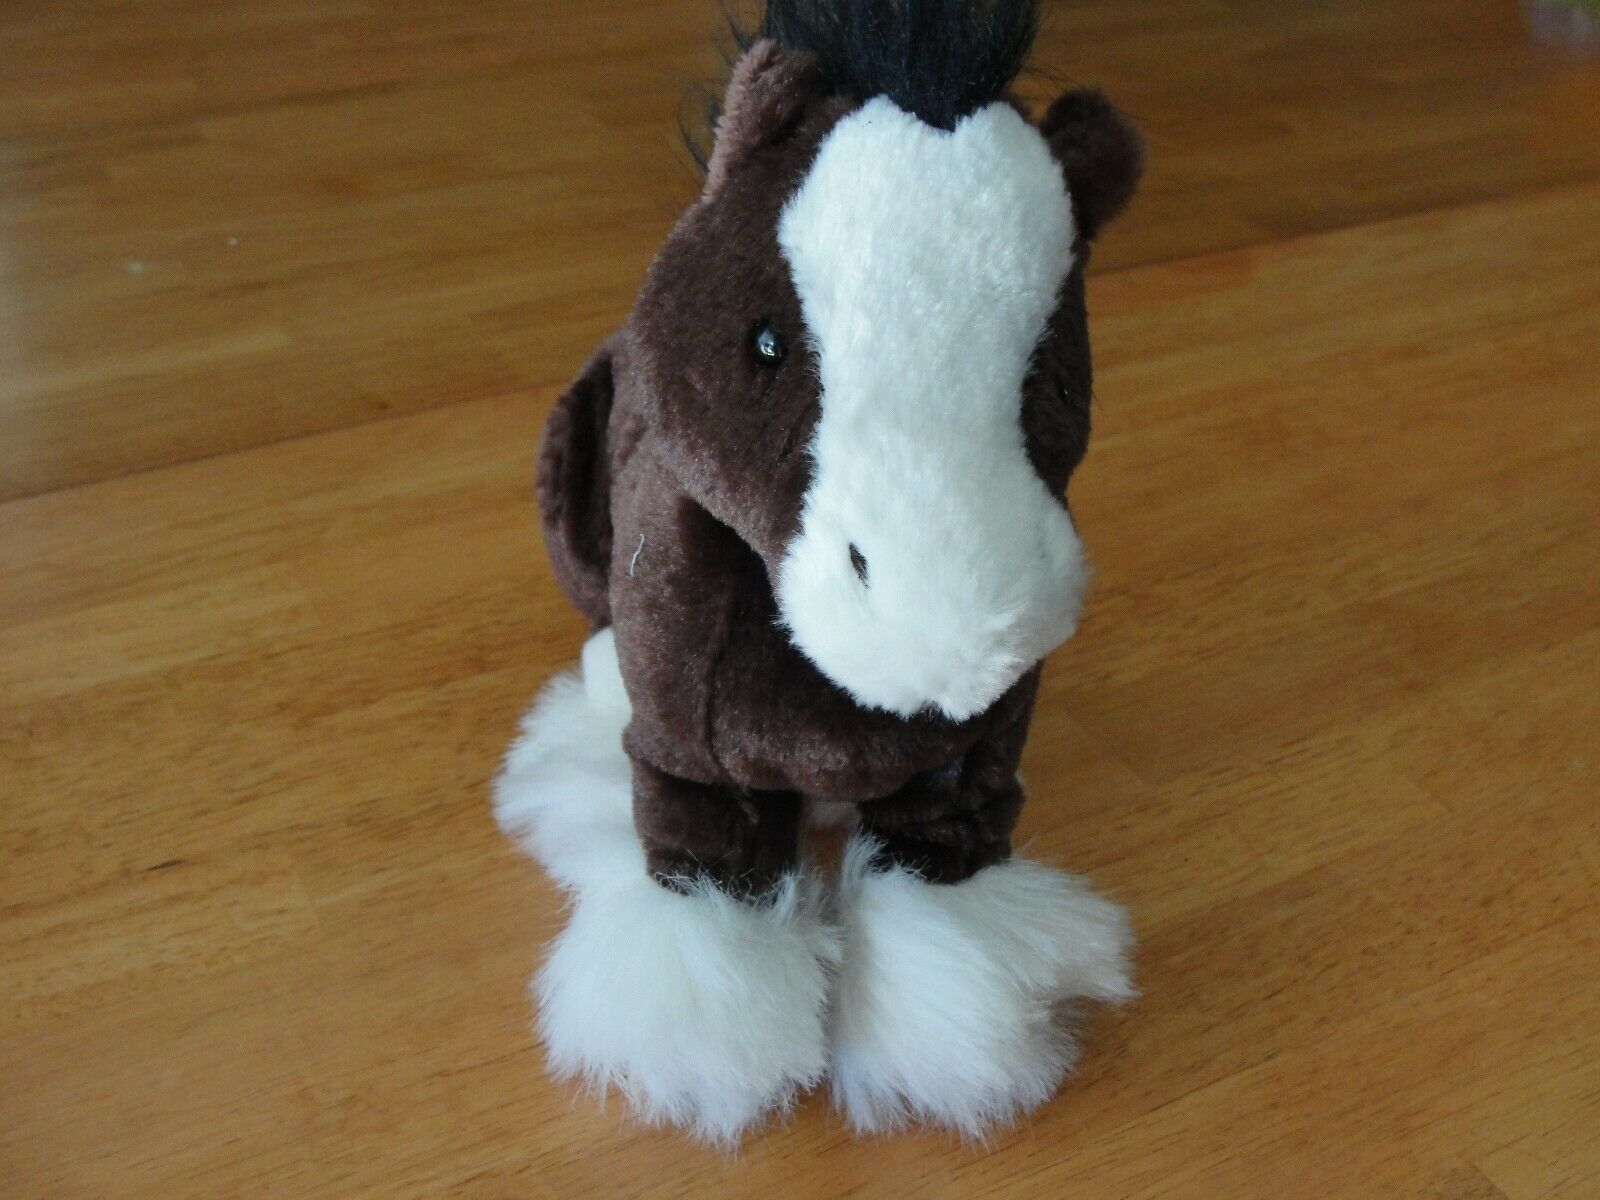 Primary image for Webkinz Clydesdale Horse, no tag No Code